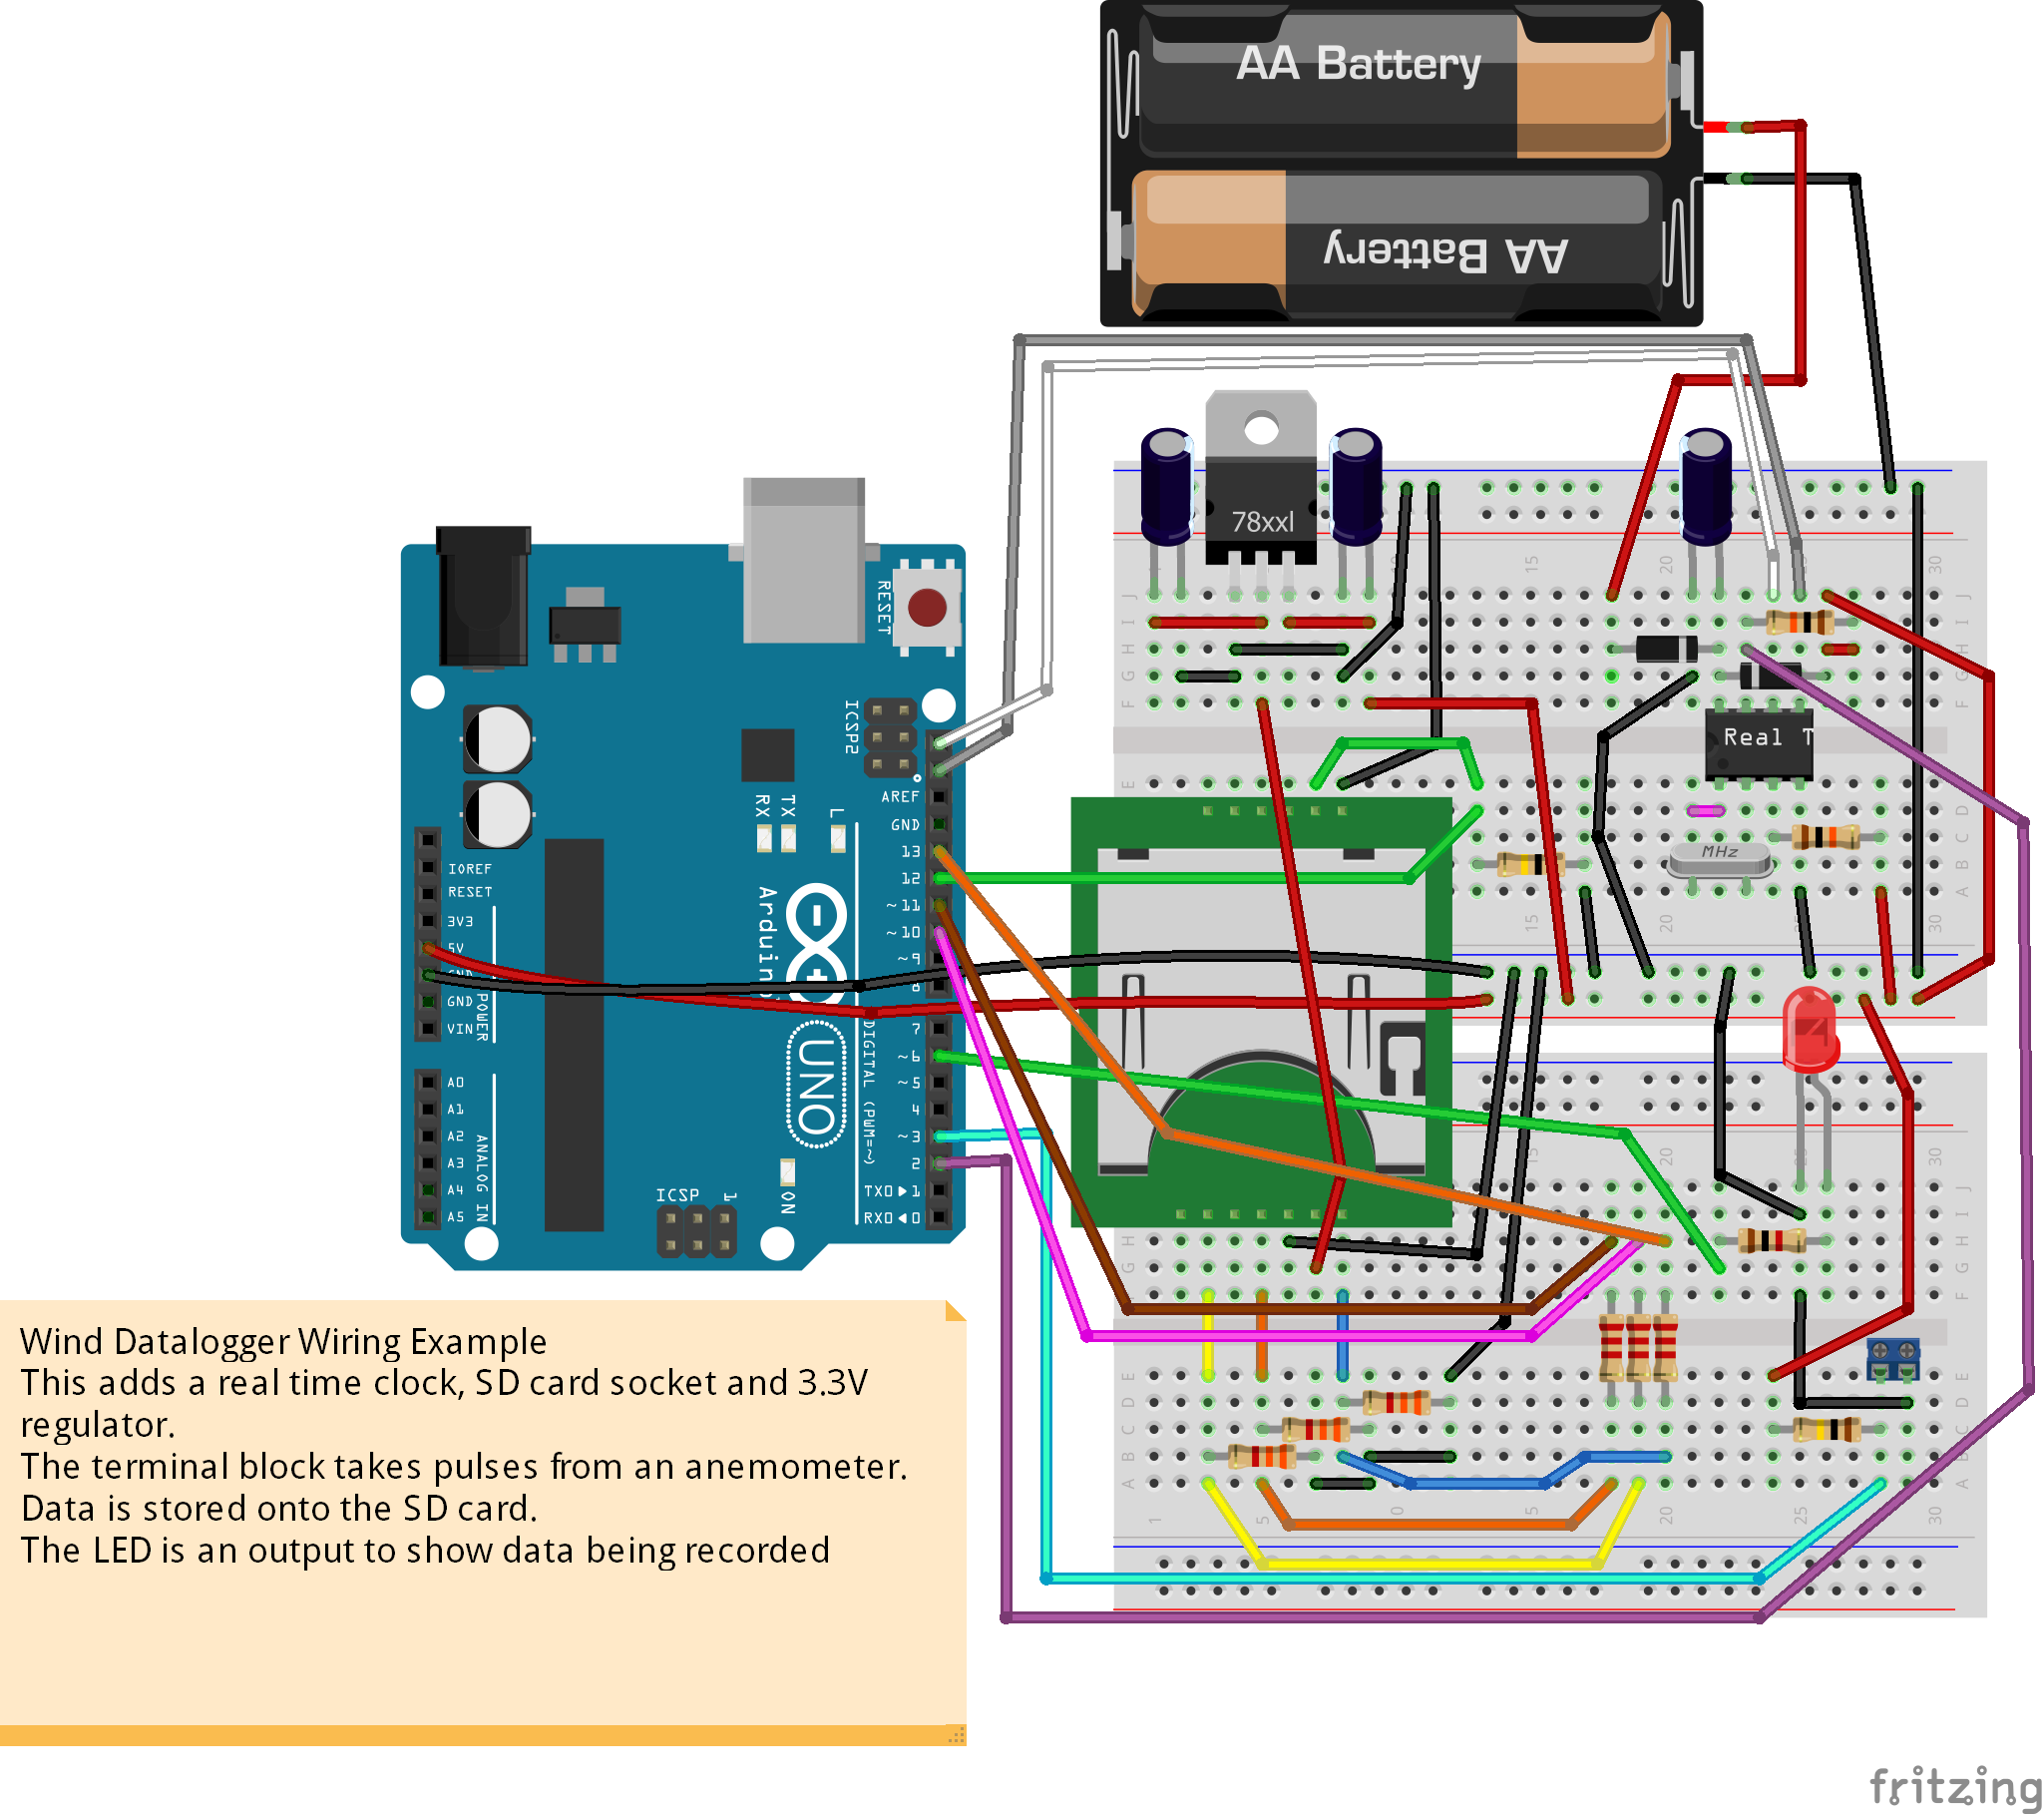 Low Cost Wind Datalogger Renewable Energy Innovation Electrical Wiring Diagram Open Source Circuit Design